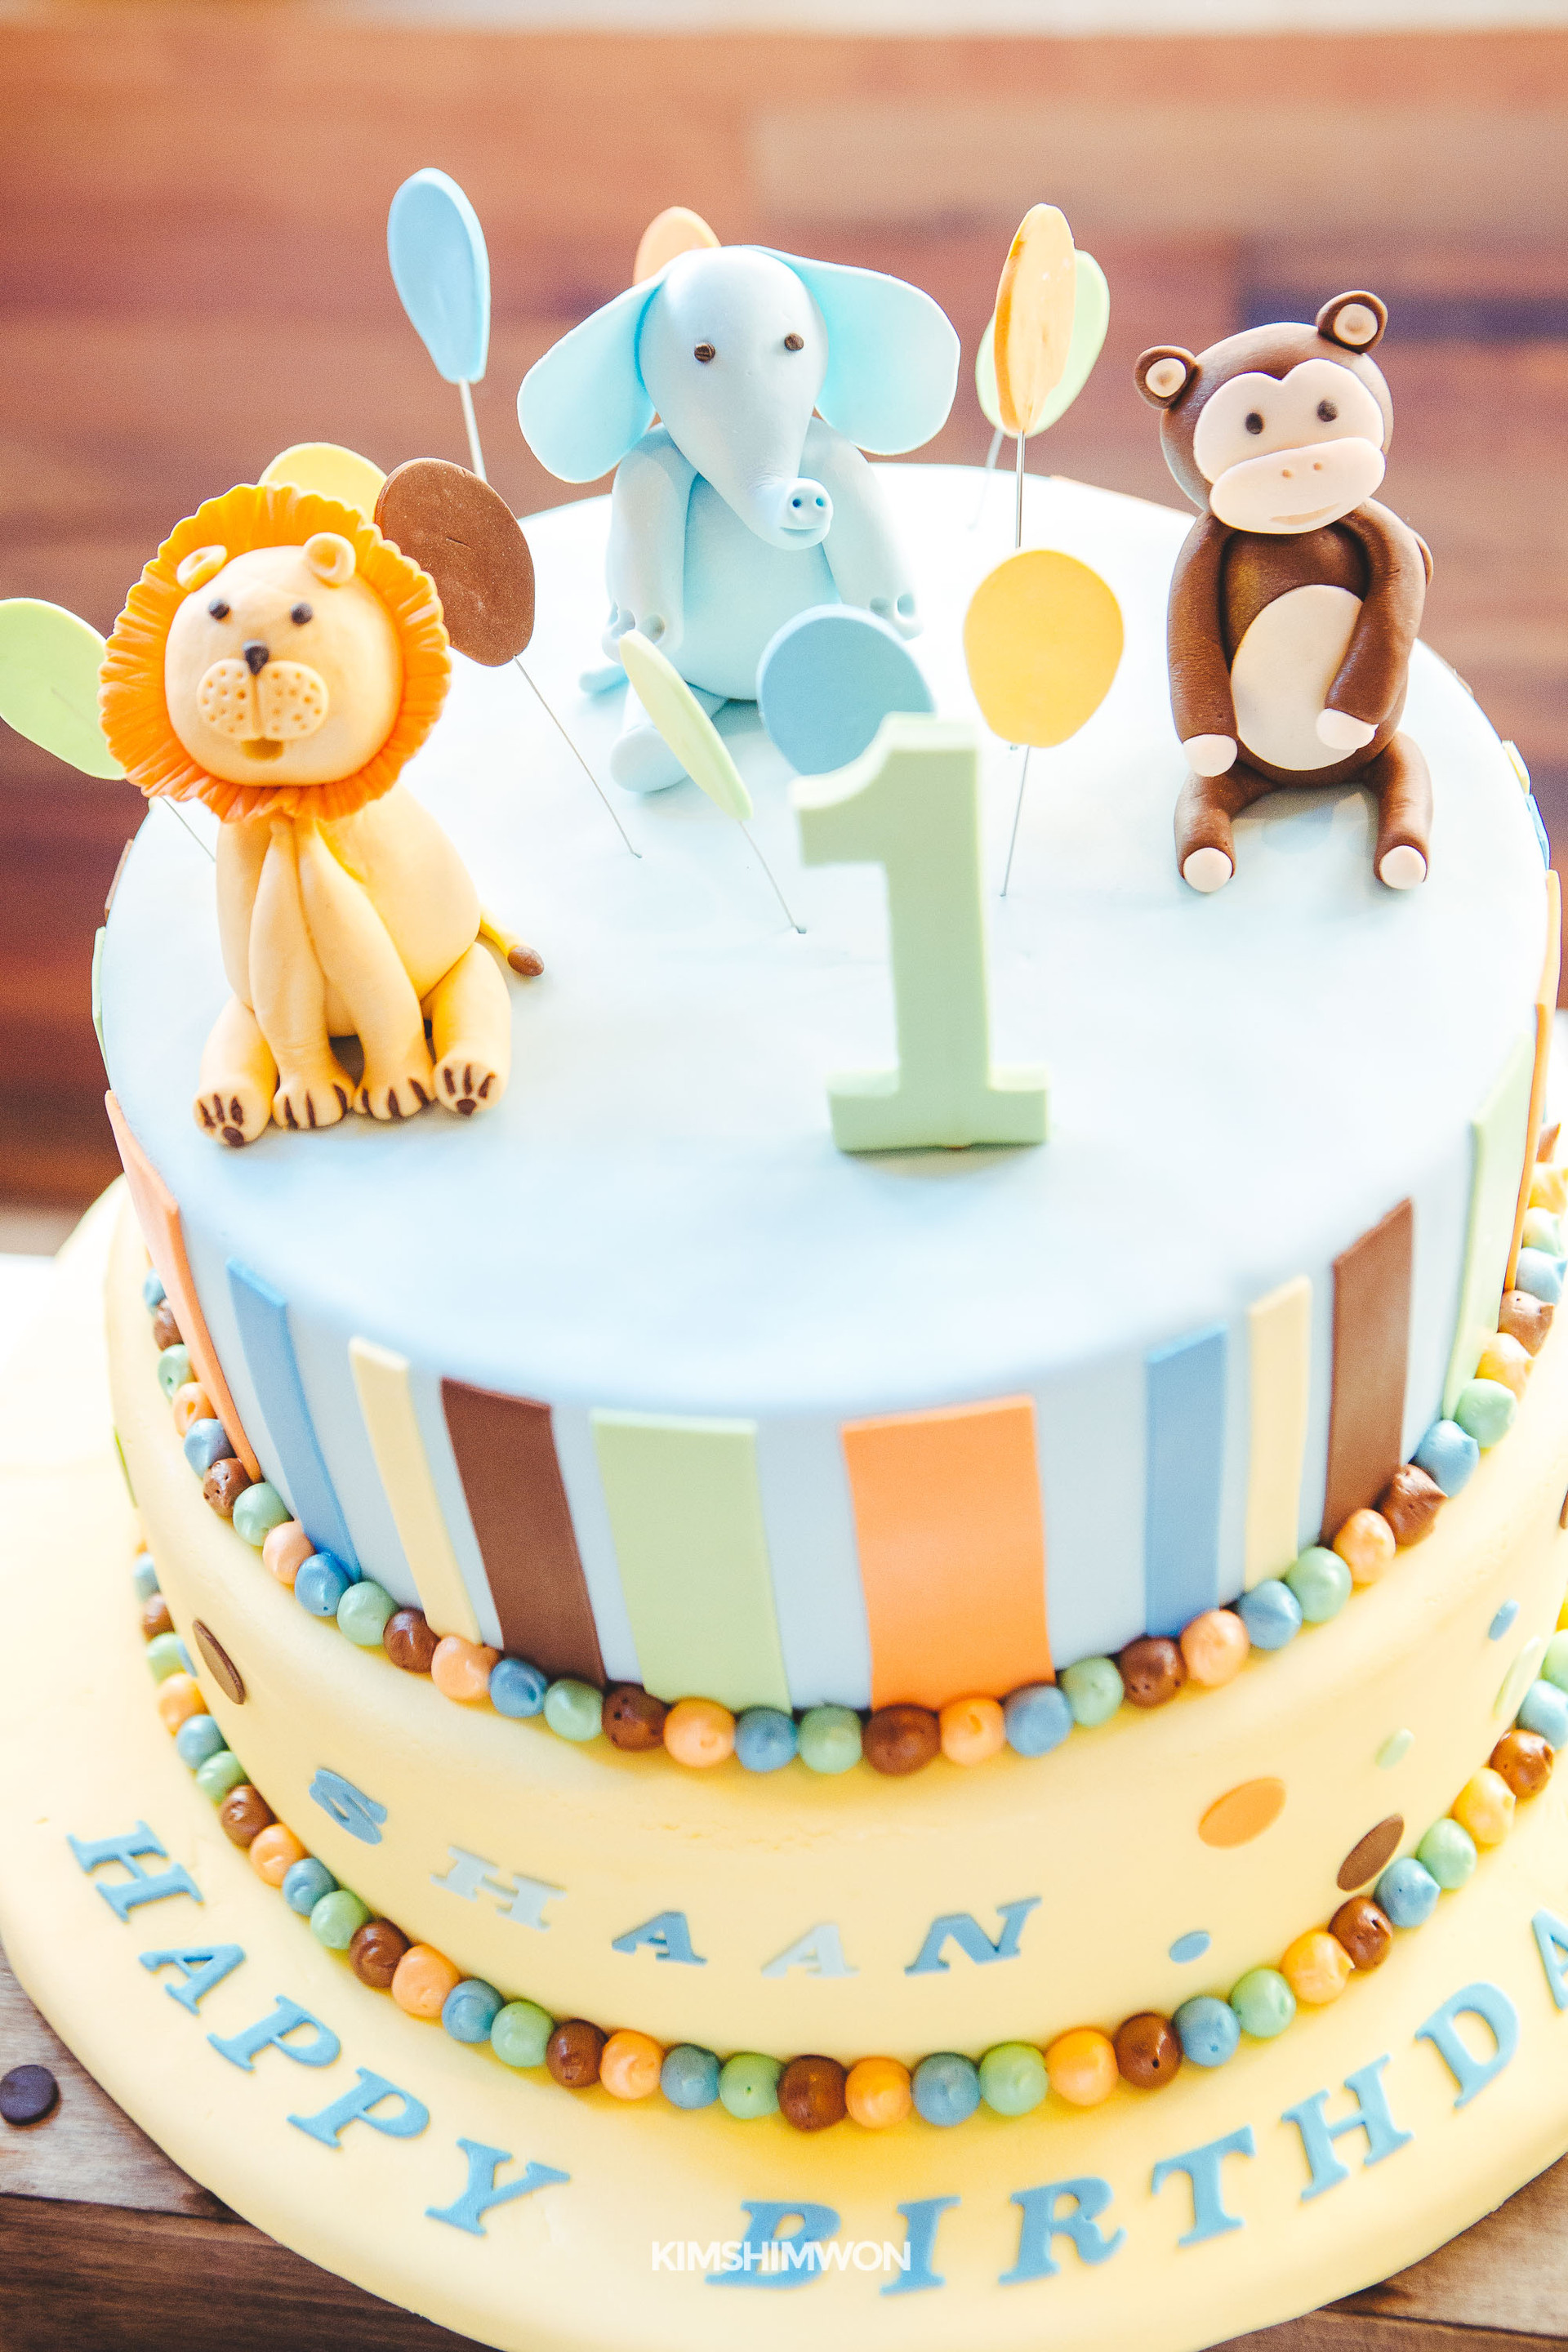 Shaan First Birthday 10.15.16-48.jpg